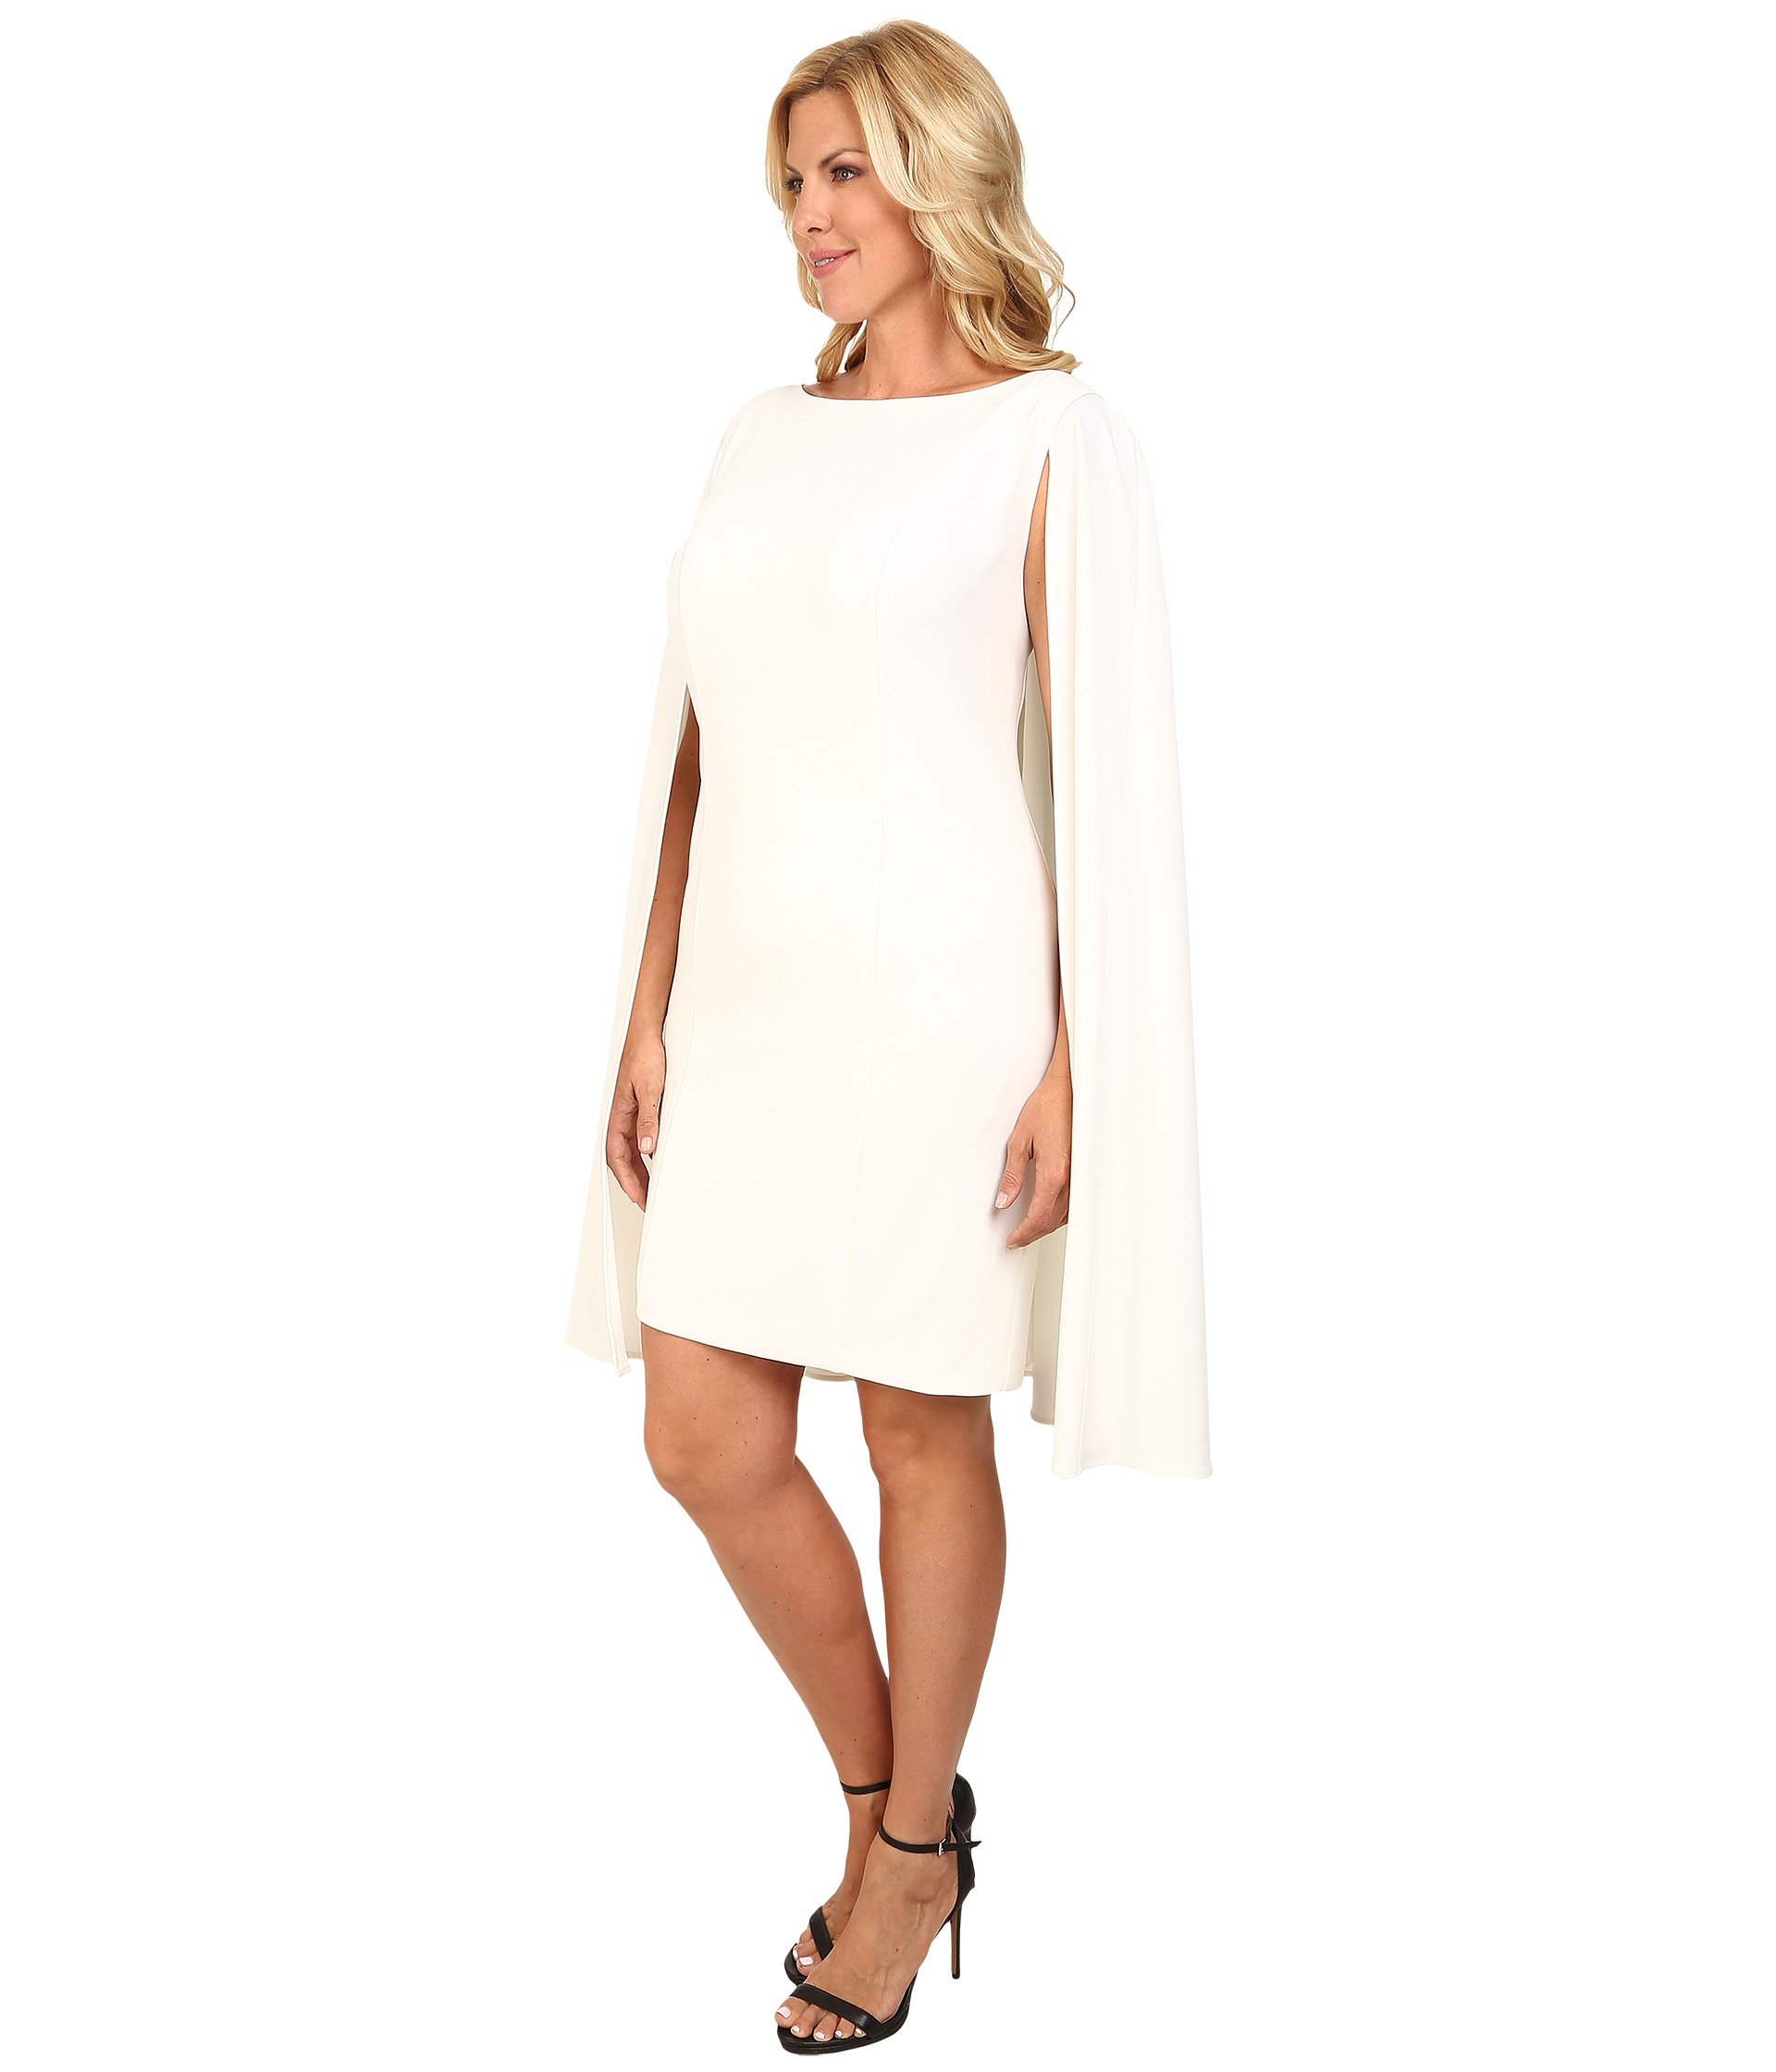 ea91c876aa9 Adrianna Papell Plus Size Structured Cape Sheath Dress in White - Lyst